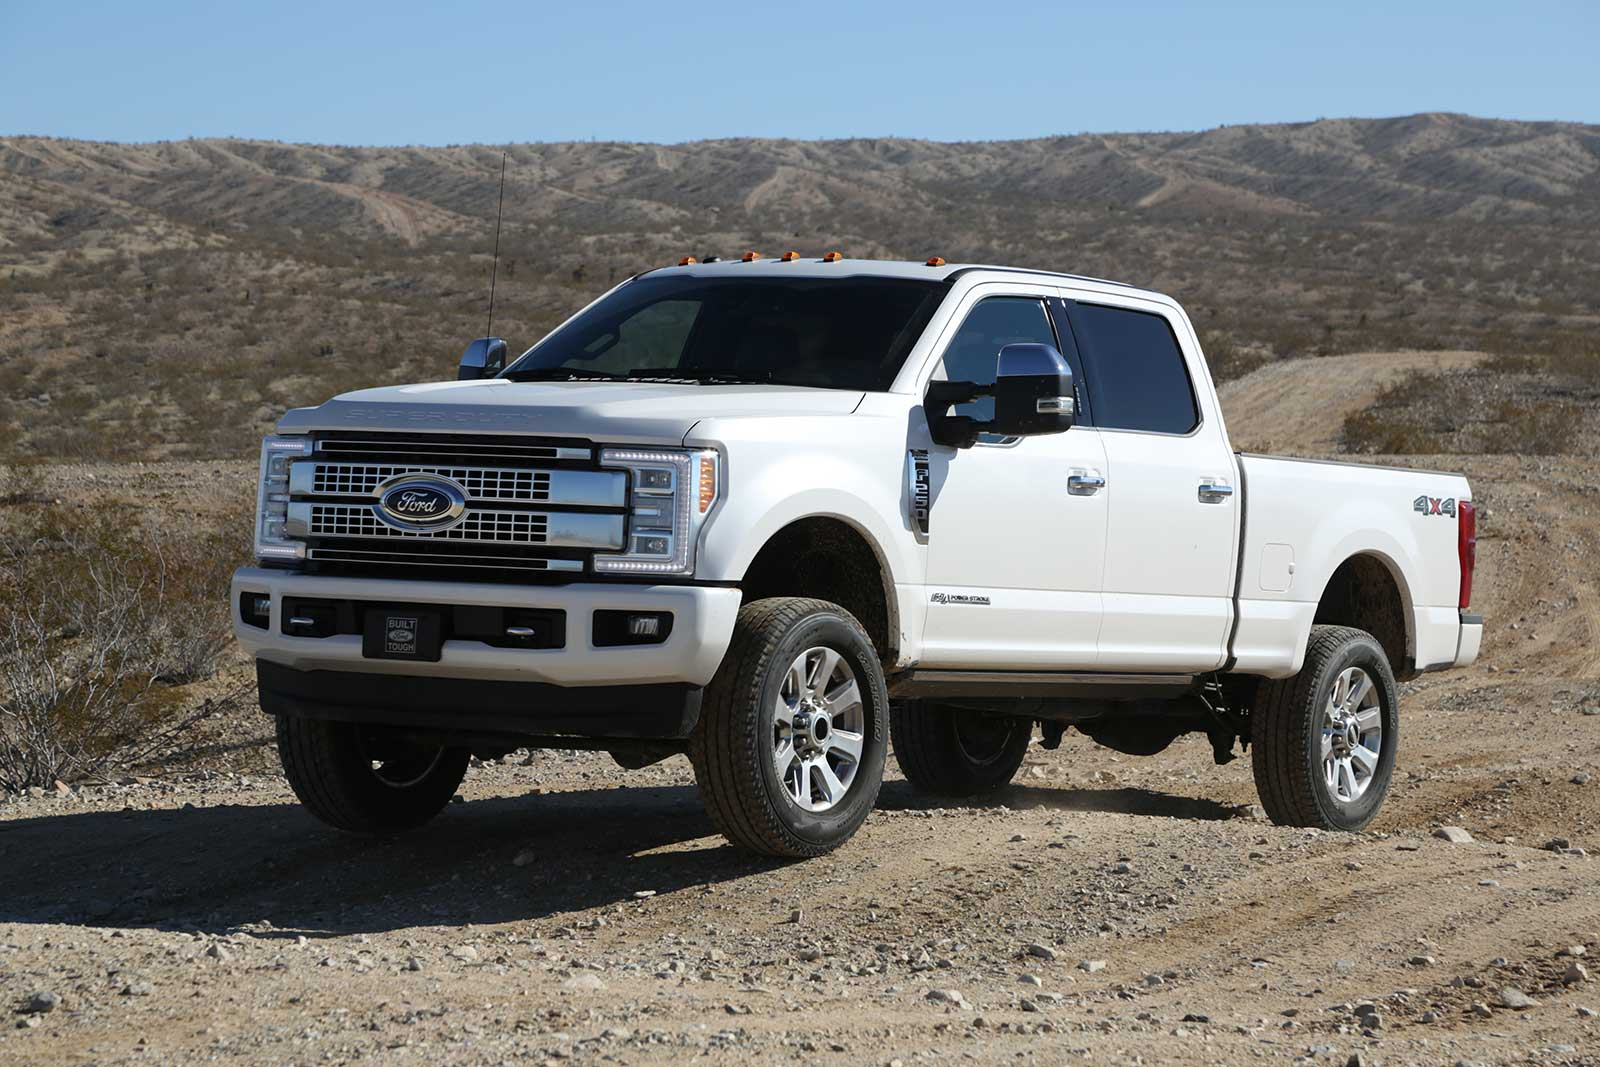 2016 Ford F250 >> 2017 Ford F-250 Super Duty: AutoGuide.com Truck of the Year Contender - AutoGuide.com